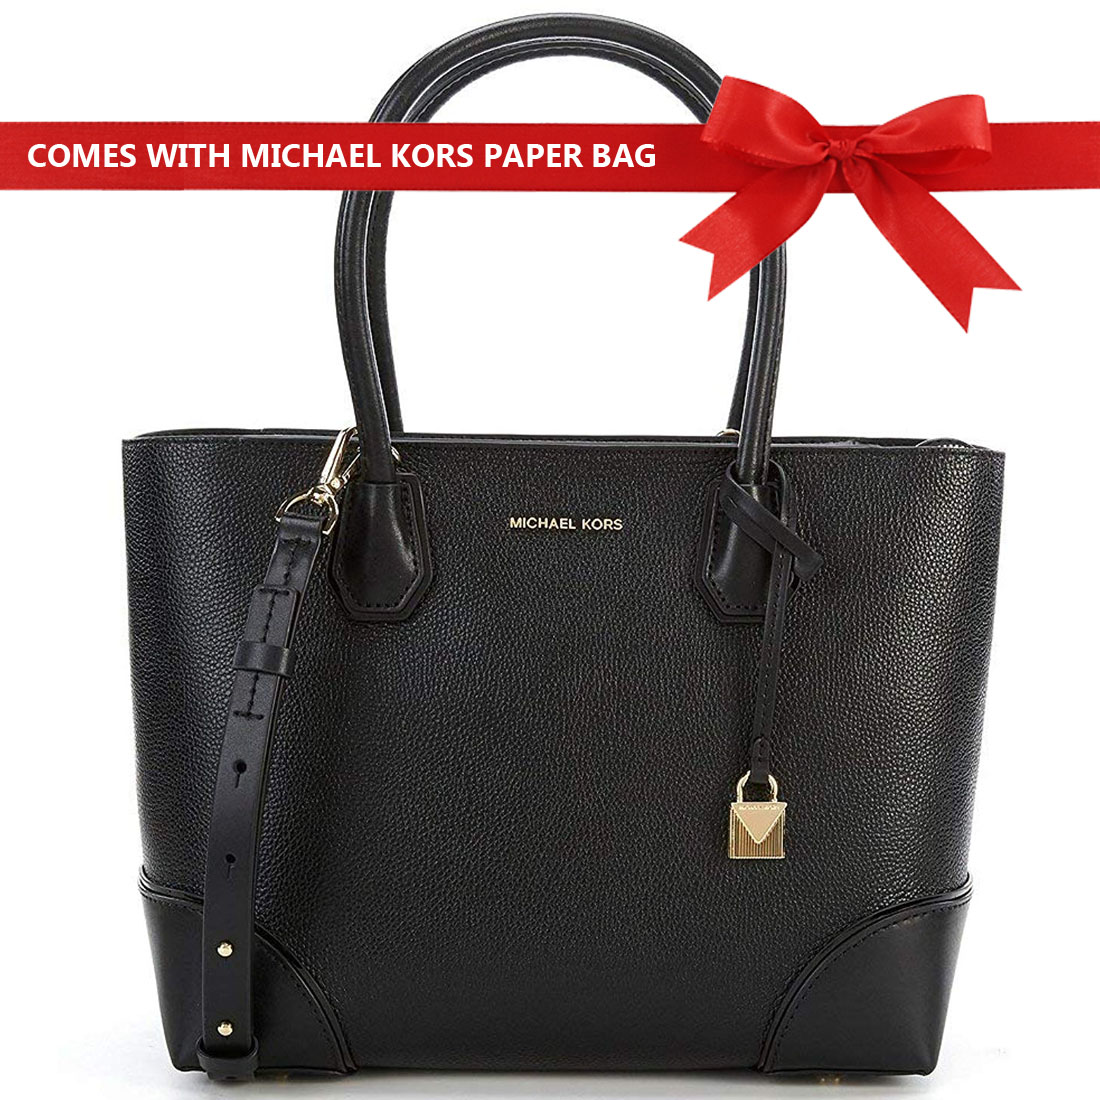 Michael Kors Mercer Gallery Medium East West Top Zip Tote Black # 30S8GZ5T8T